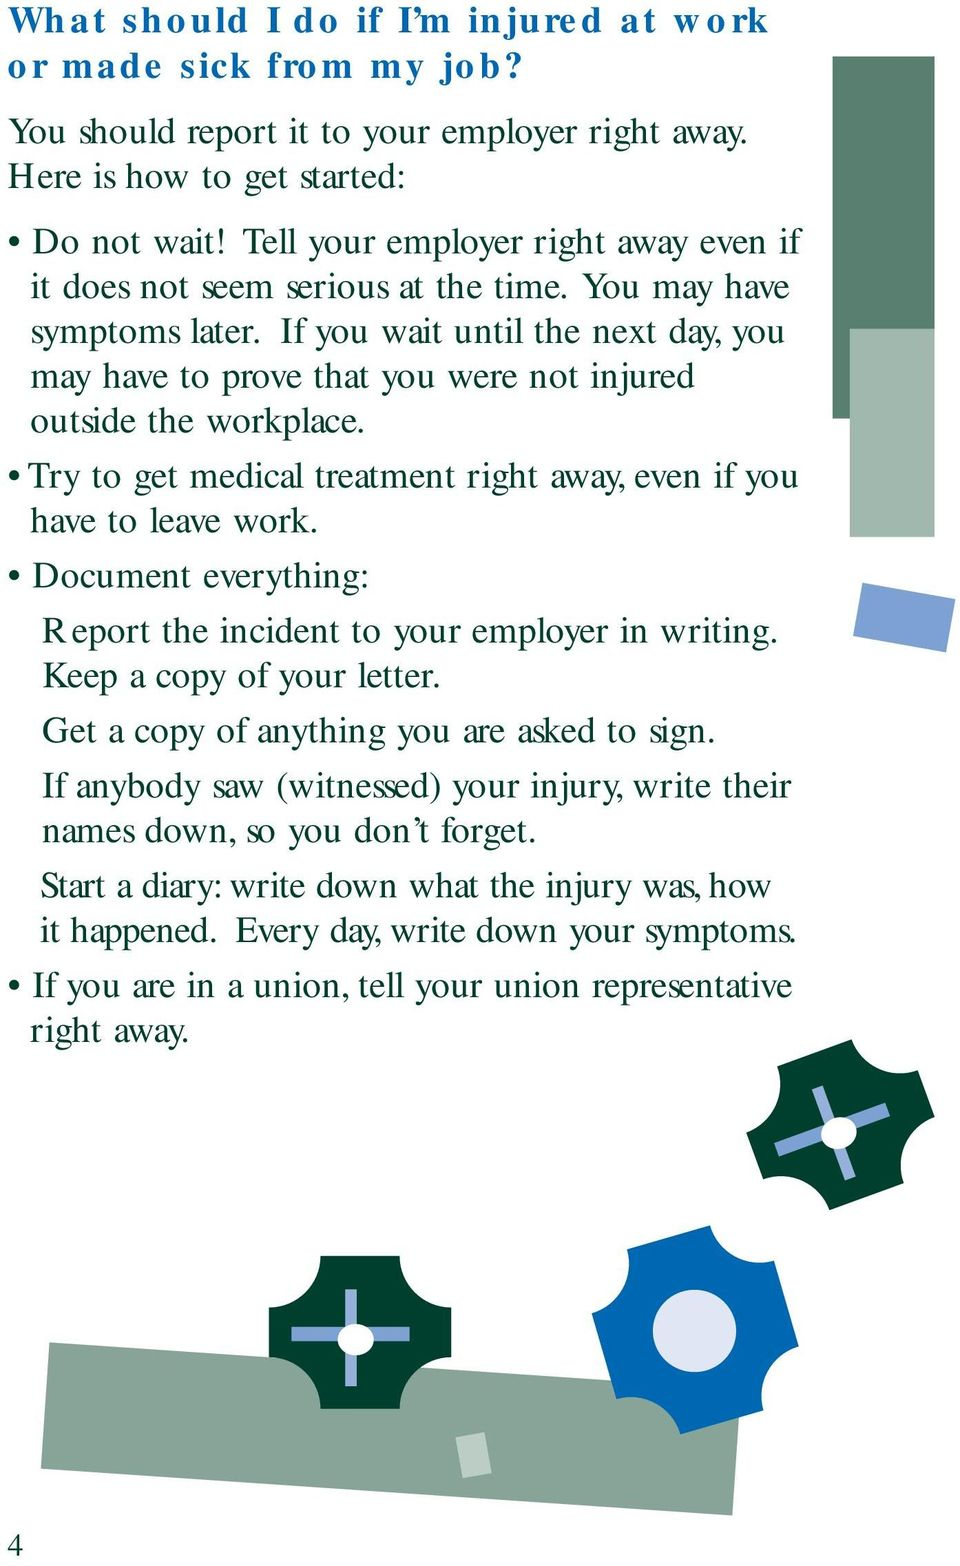 If you wait until the next day, you may have to prove that you were not injured outside the workplace. Try to get medical treatment right away, even if you have to leave work.